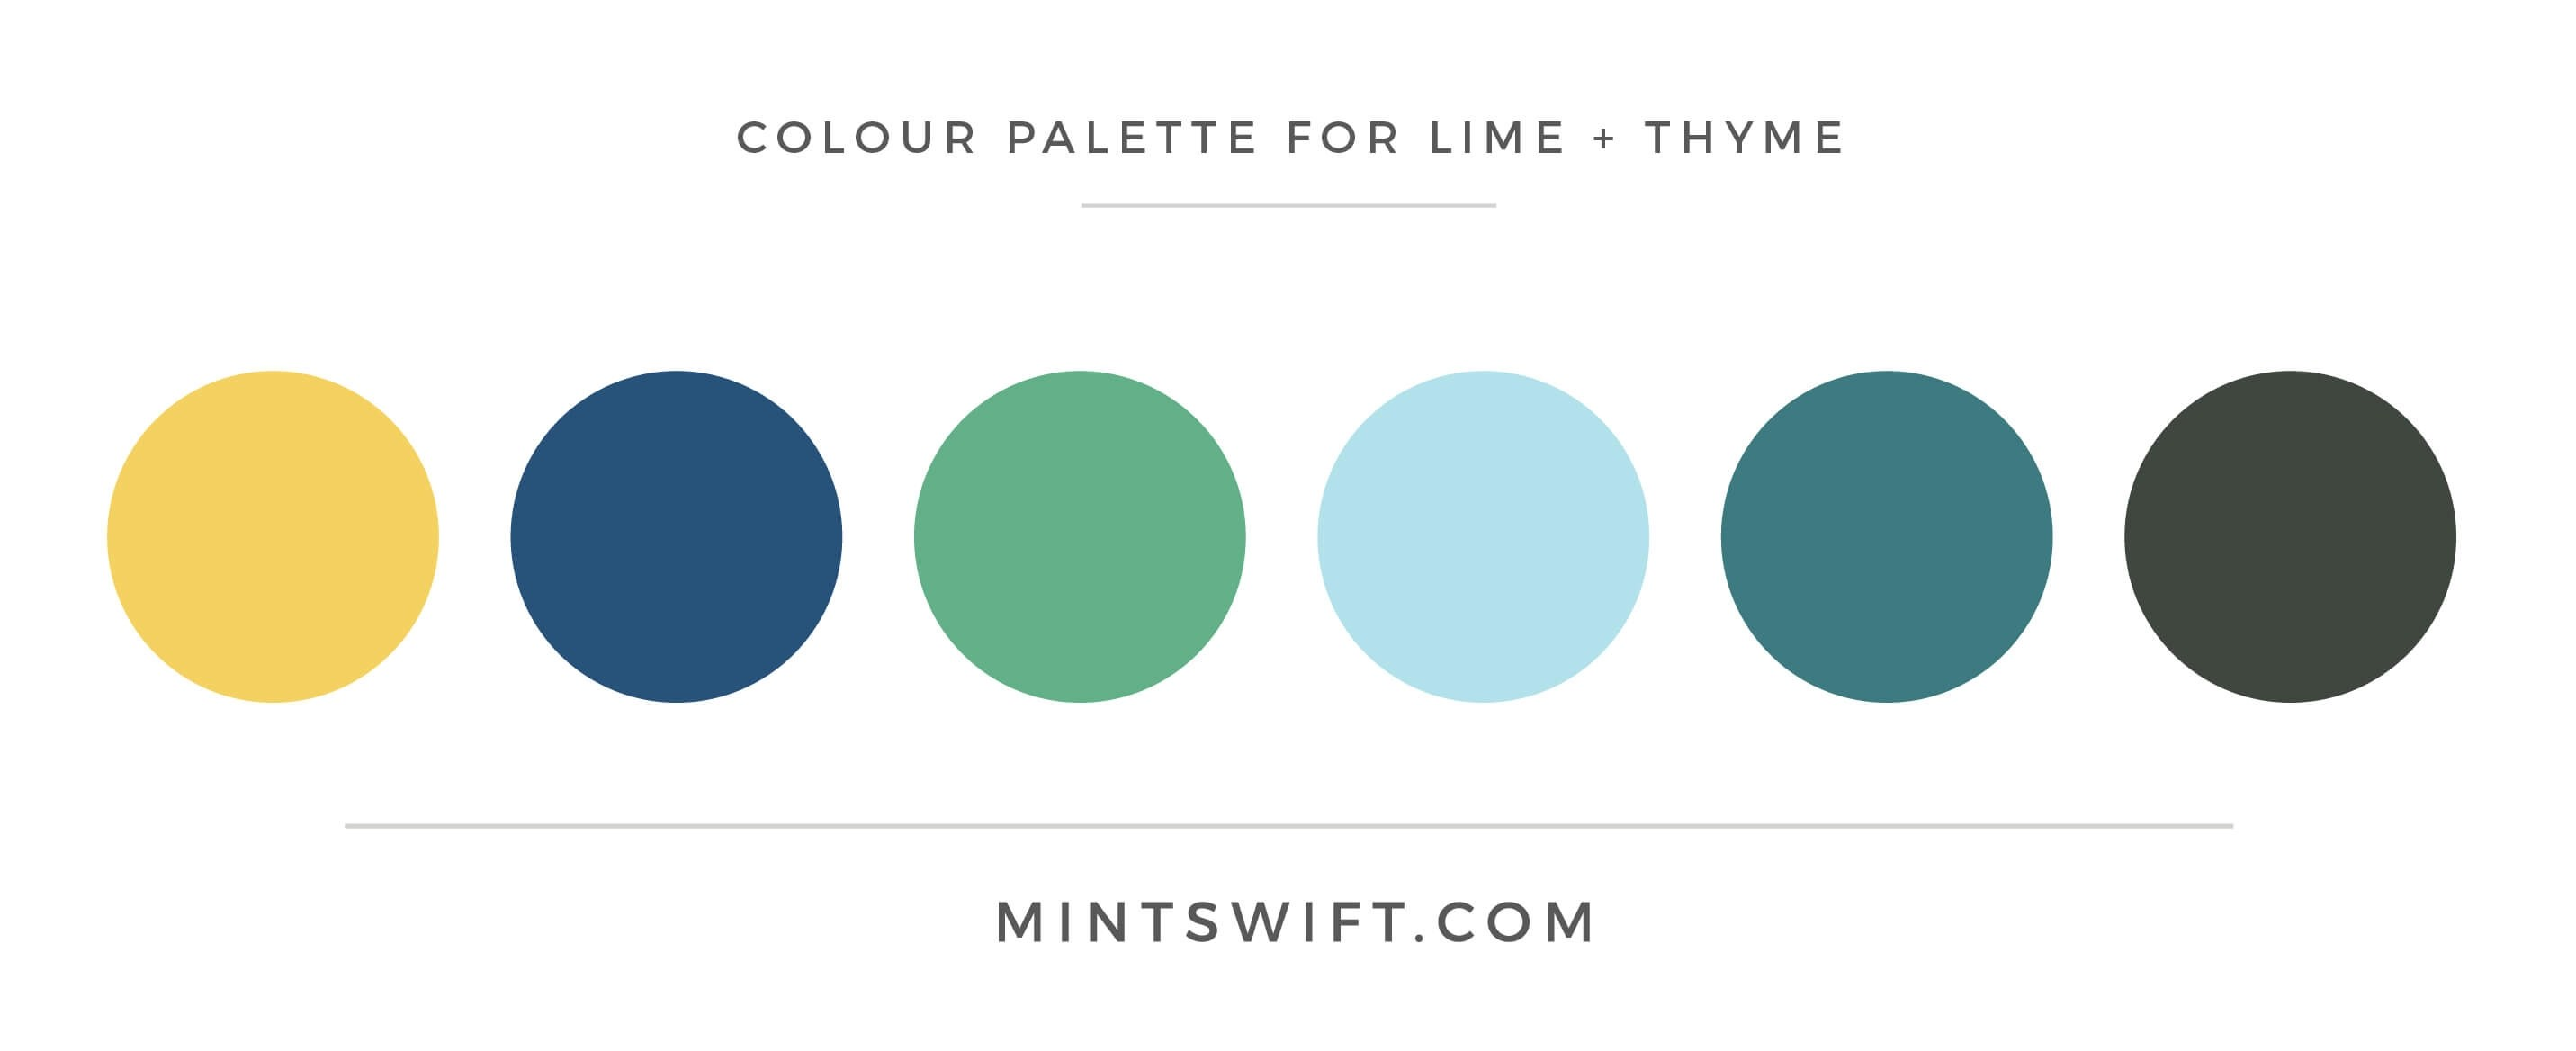 Lime + Thyme - Colour Palette - Brand & Website Design - MintSwift